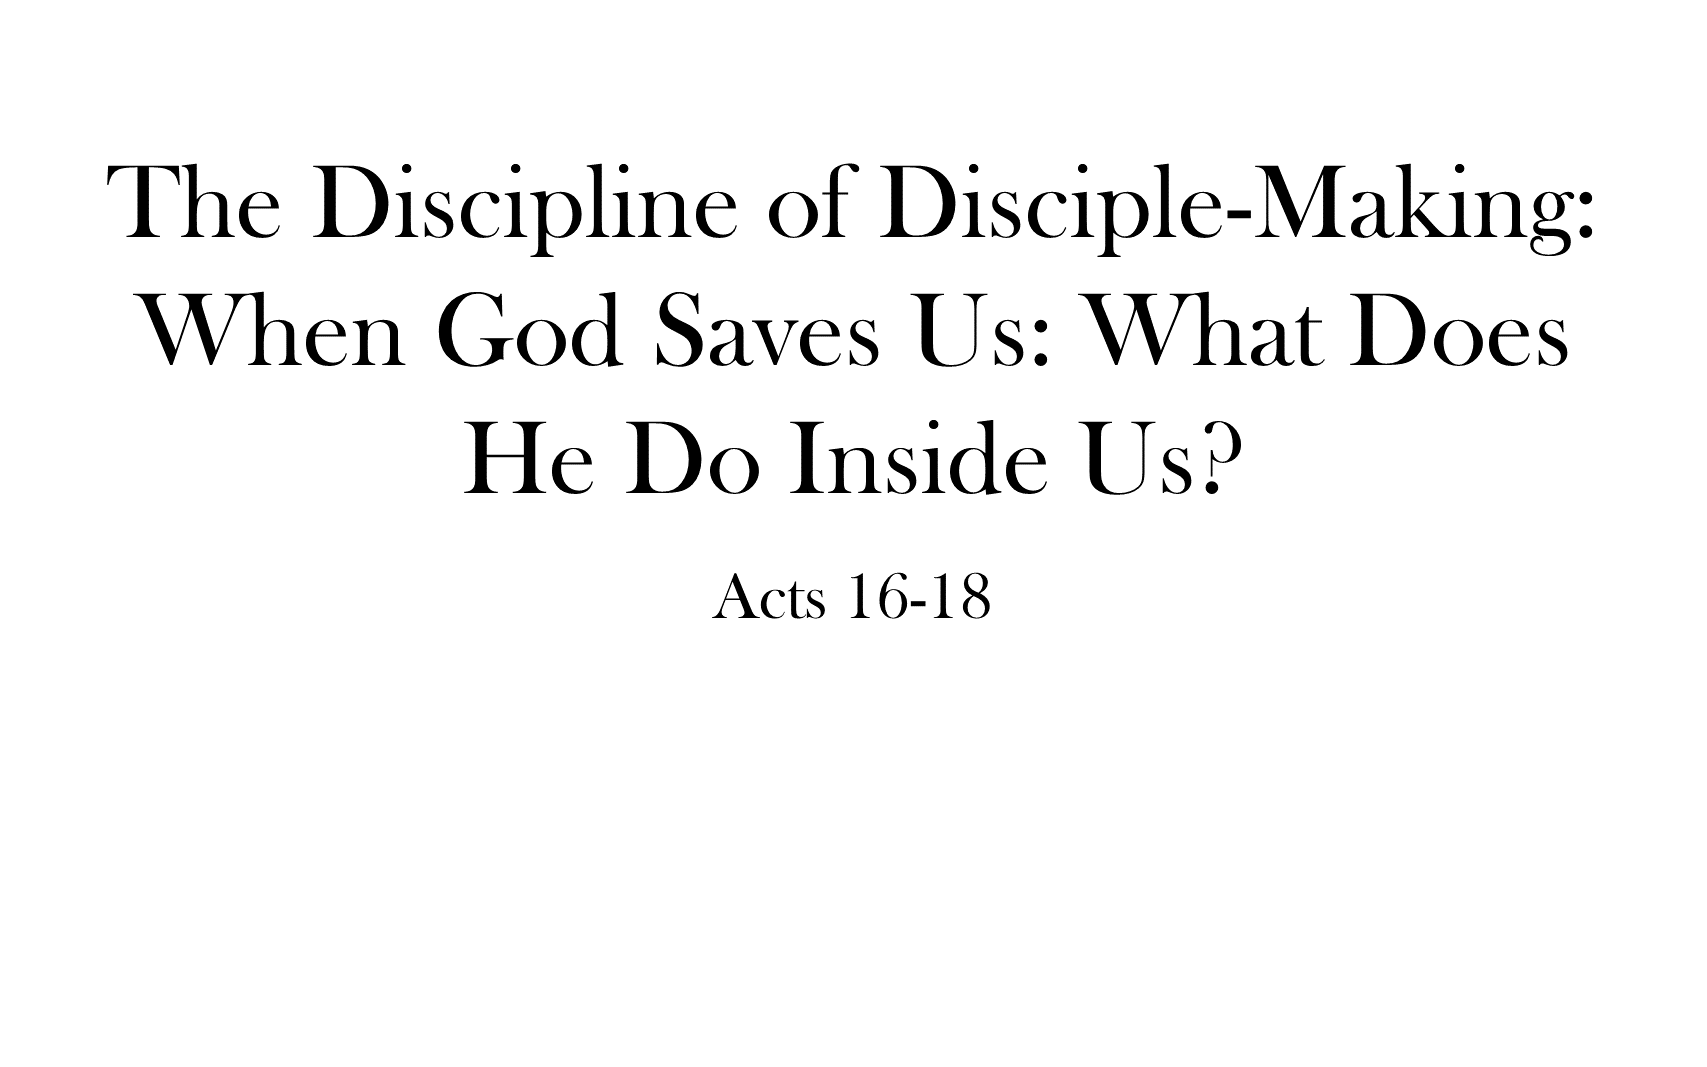 ESH-19 - The Discipline Of Disciple-Making - When God Saves Us - What Does He Do Inside Us (1)